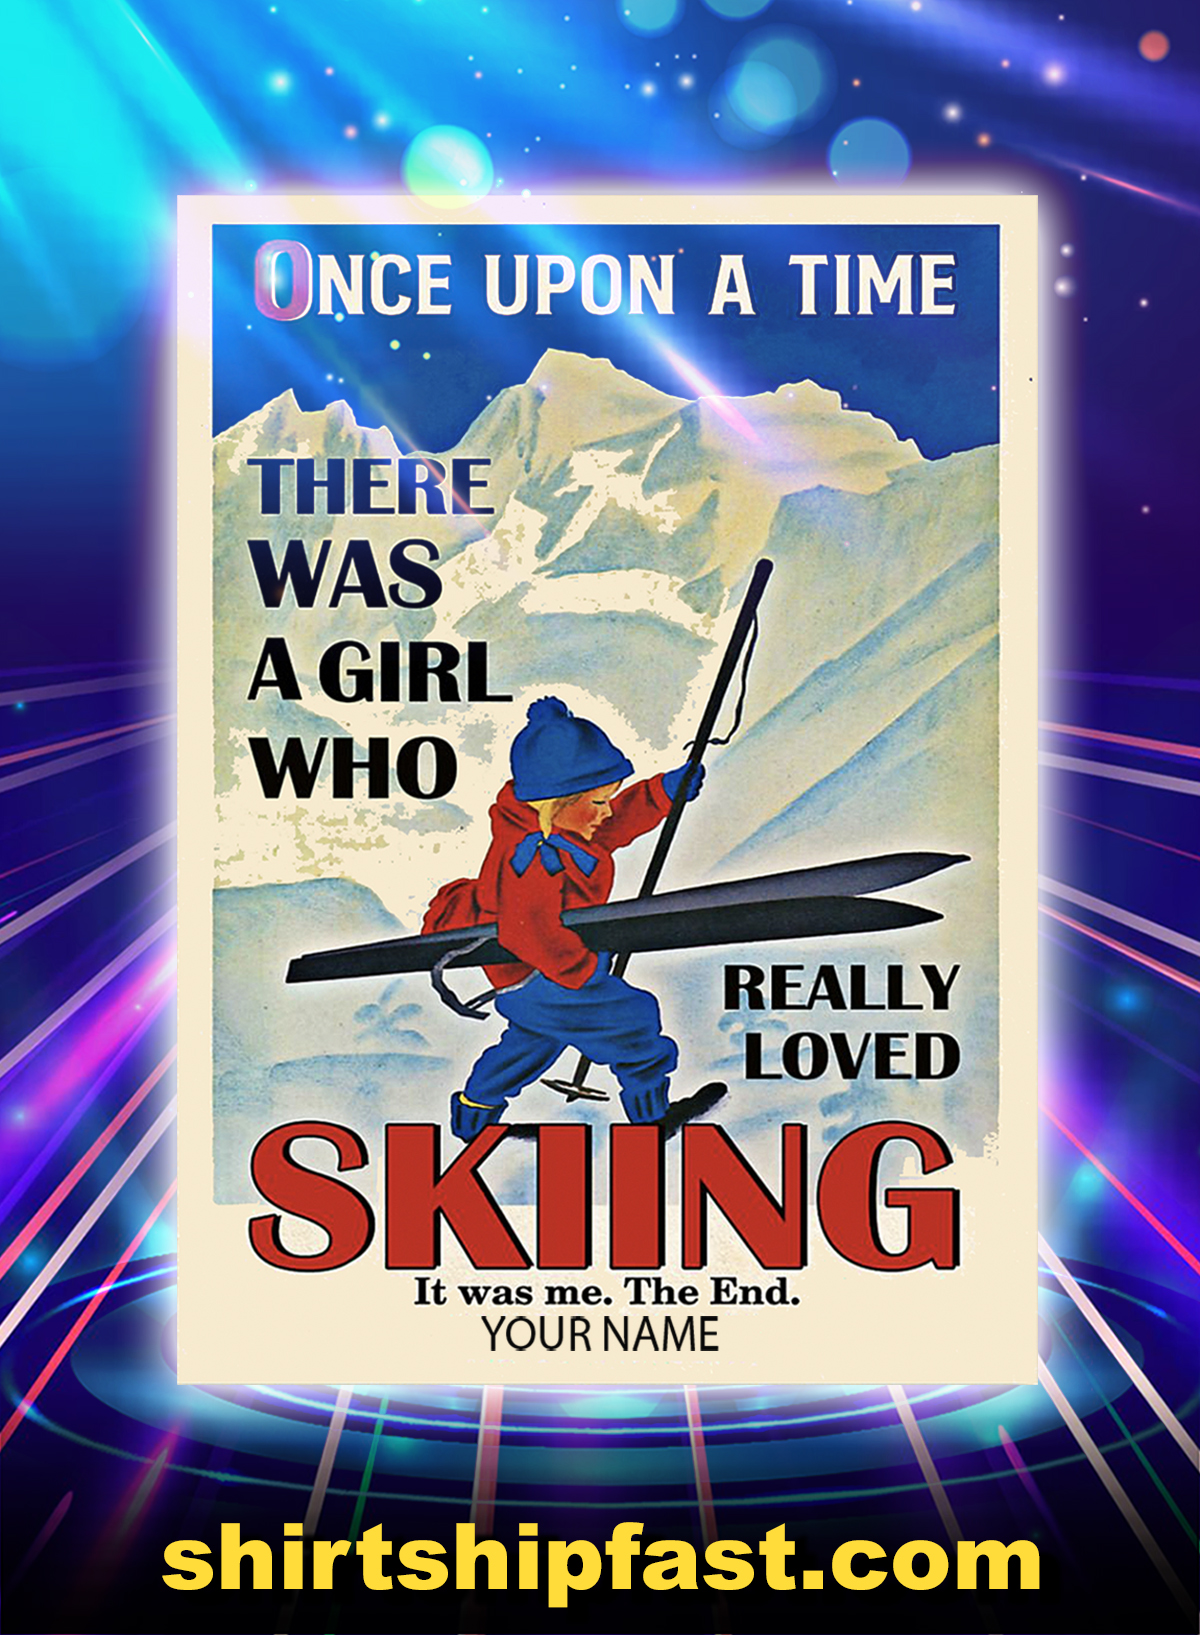 Personalized custom name Once upon a time there was a girl who really loved skiing poster - A1